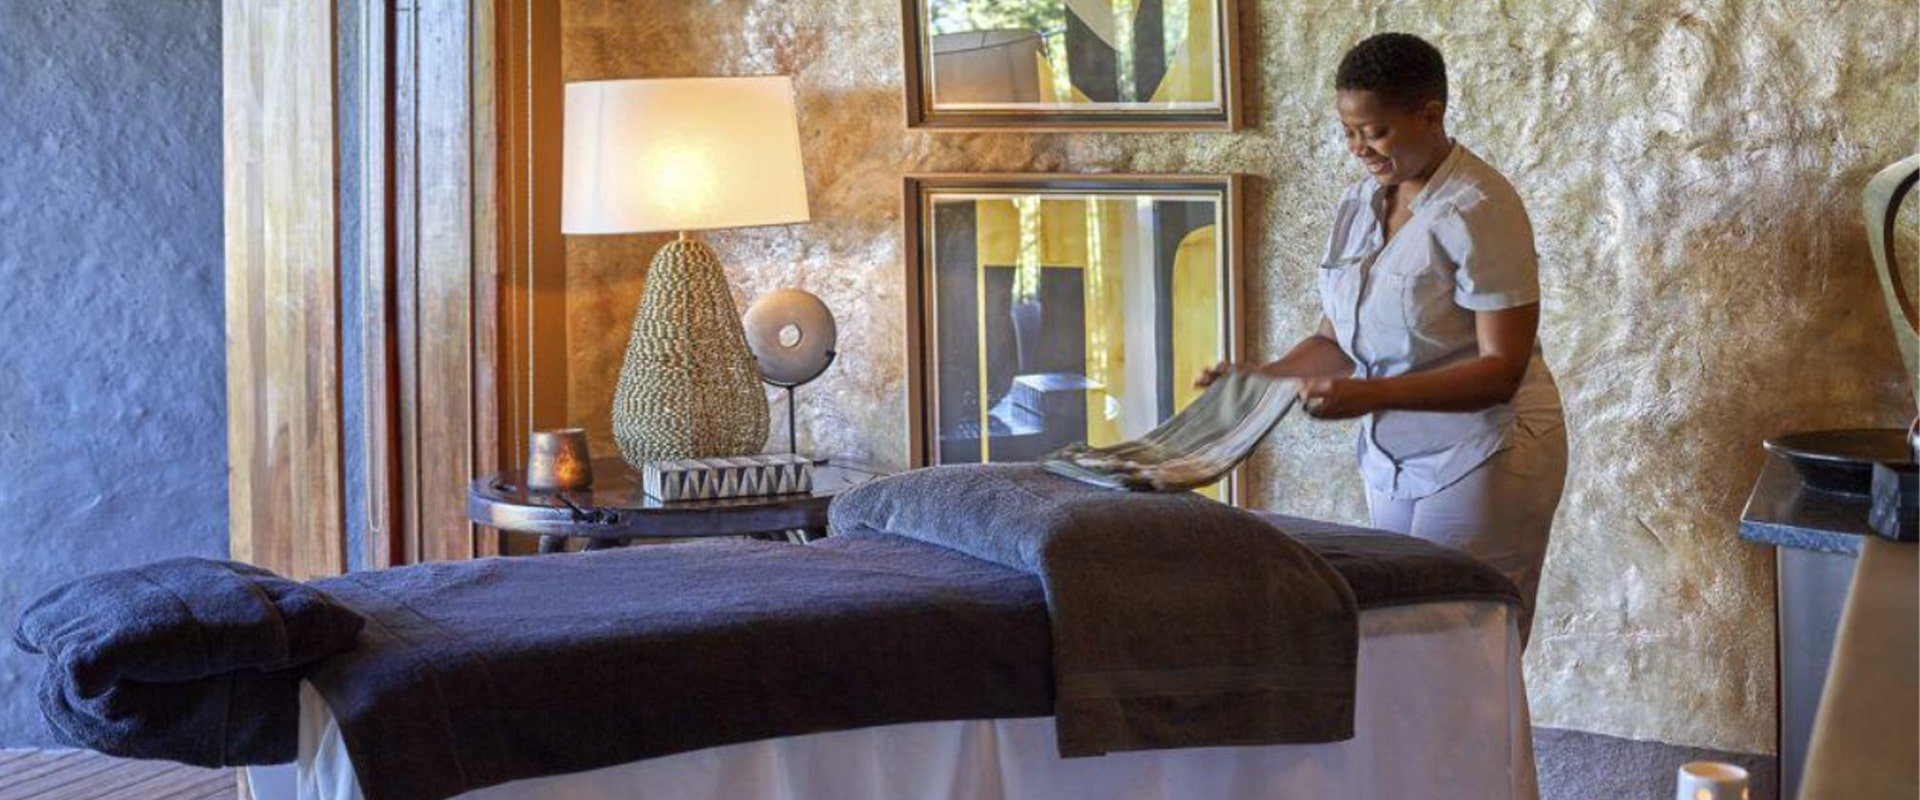 Unwind in the tranquillity of the spa